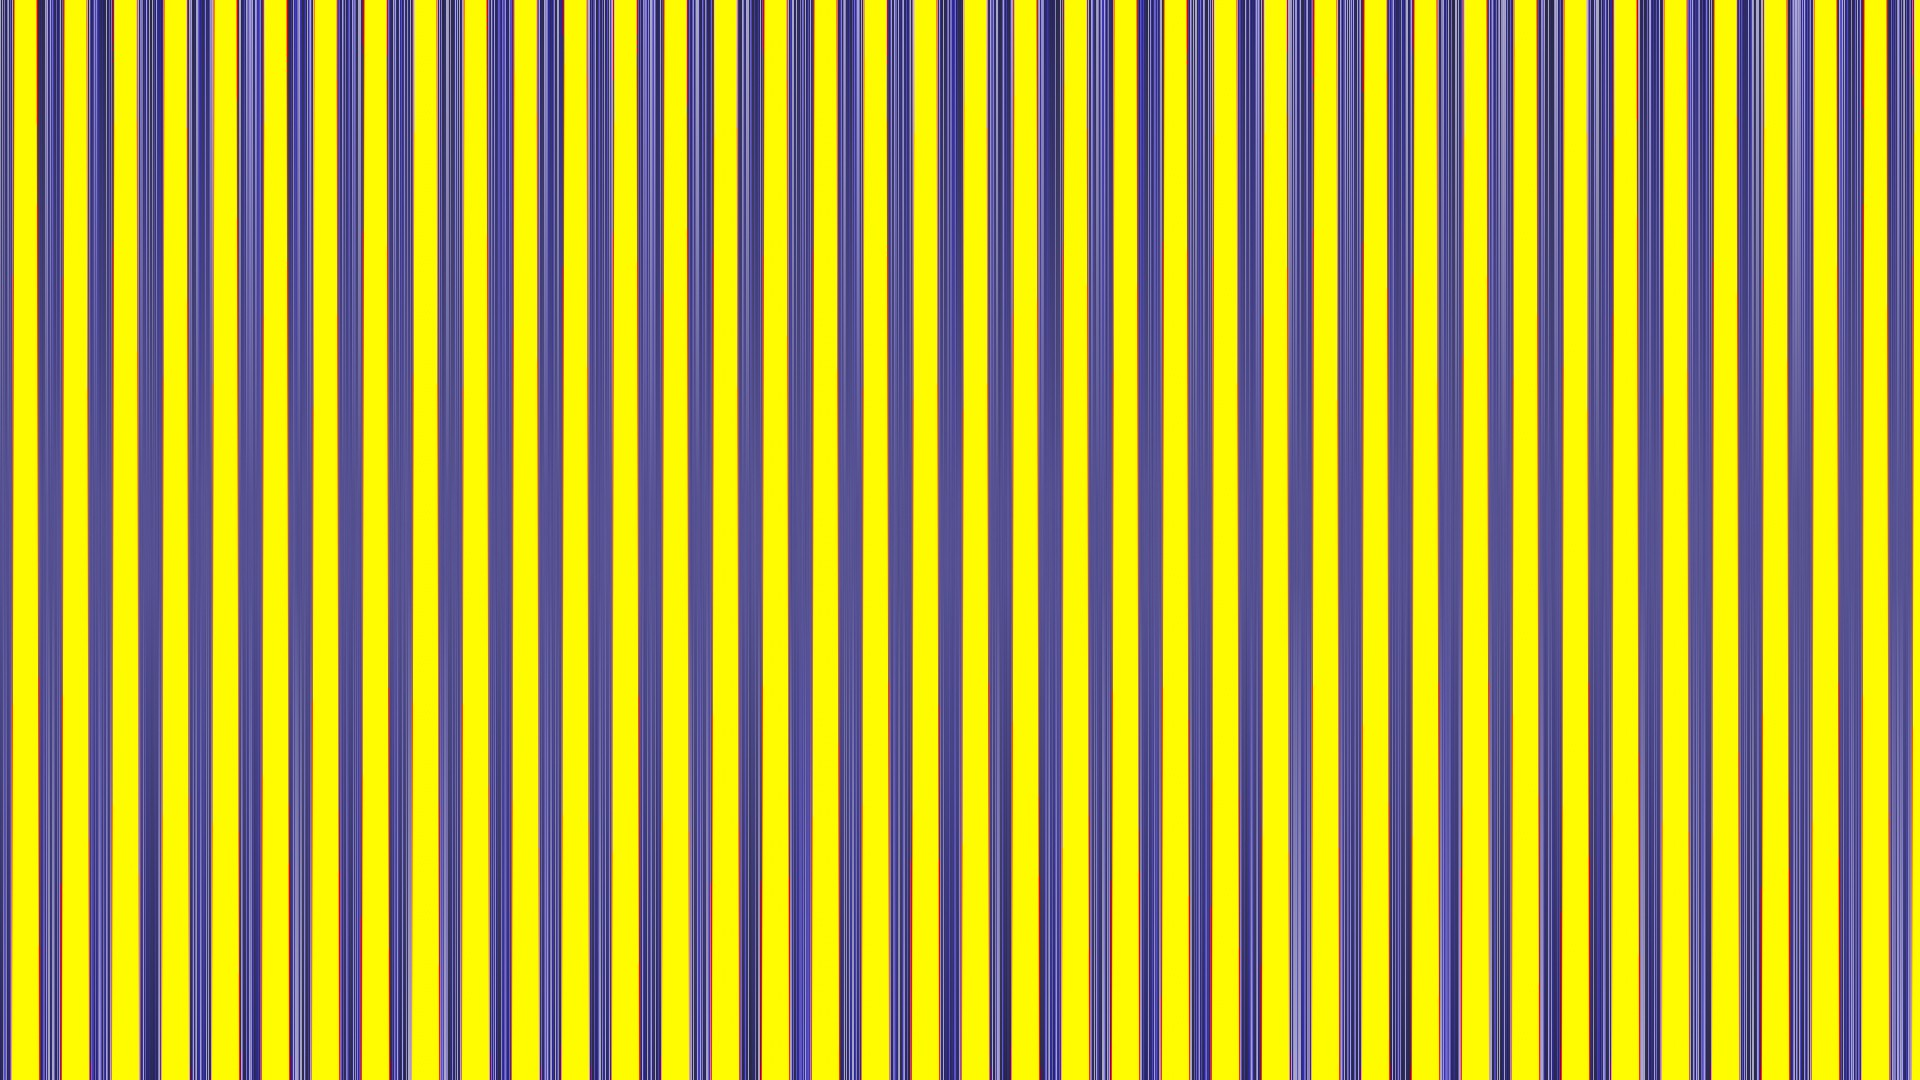 Blue And Yellow Striped Wallpaper: Blue White Yellow Wallpaper